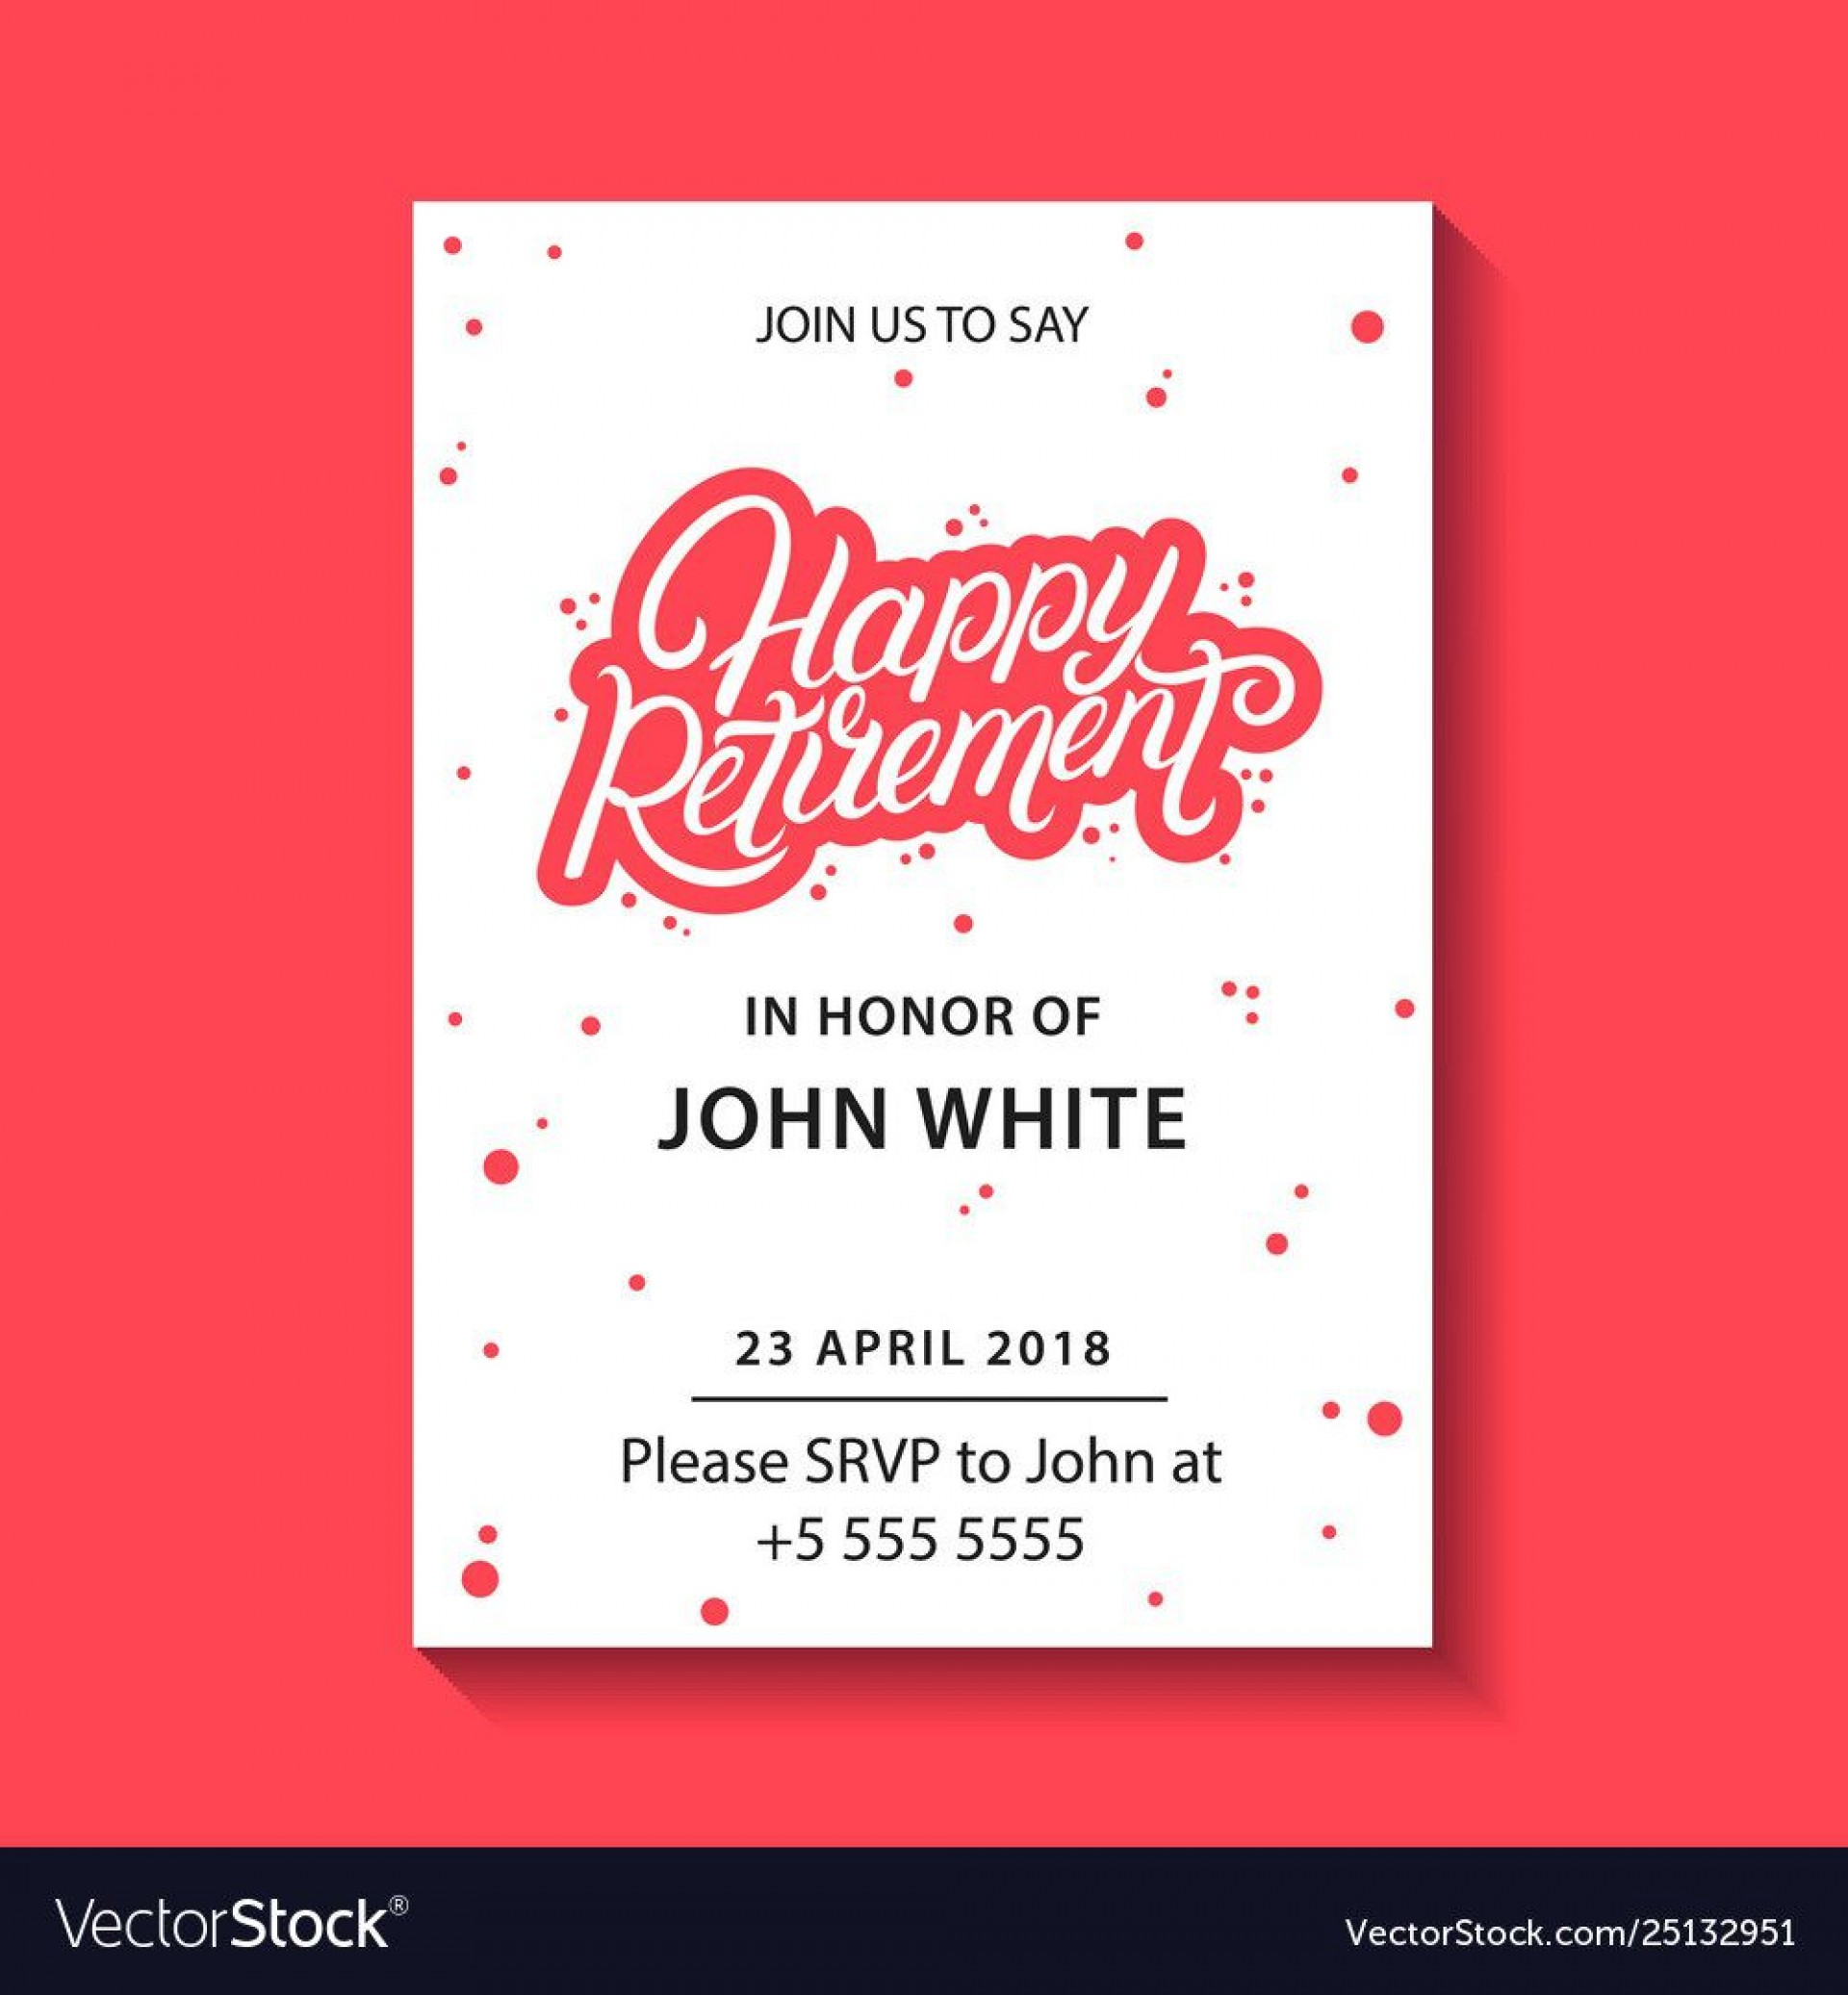 008 Phenomenal Retirement Farewell Party Invitation Template Free Highest Quality 1920